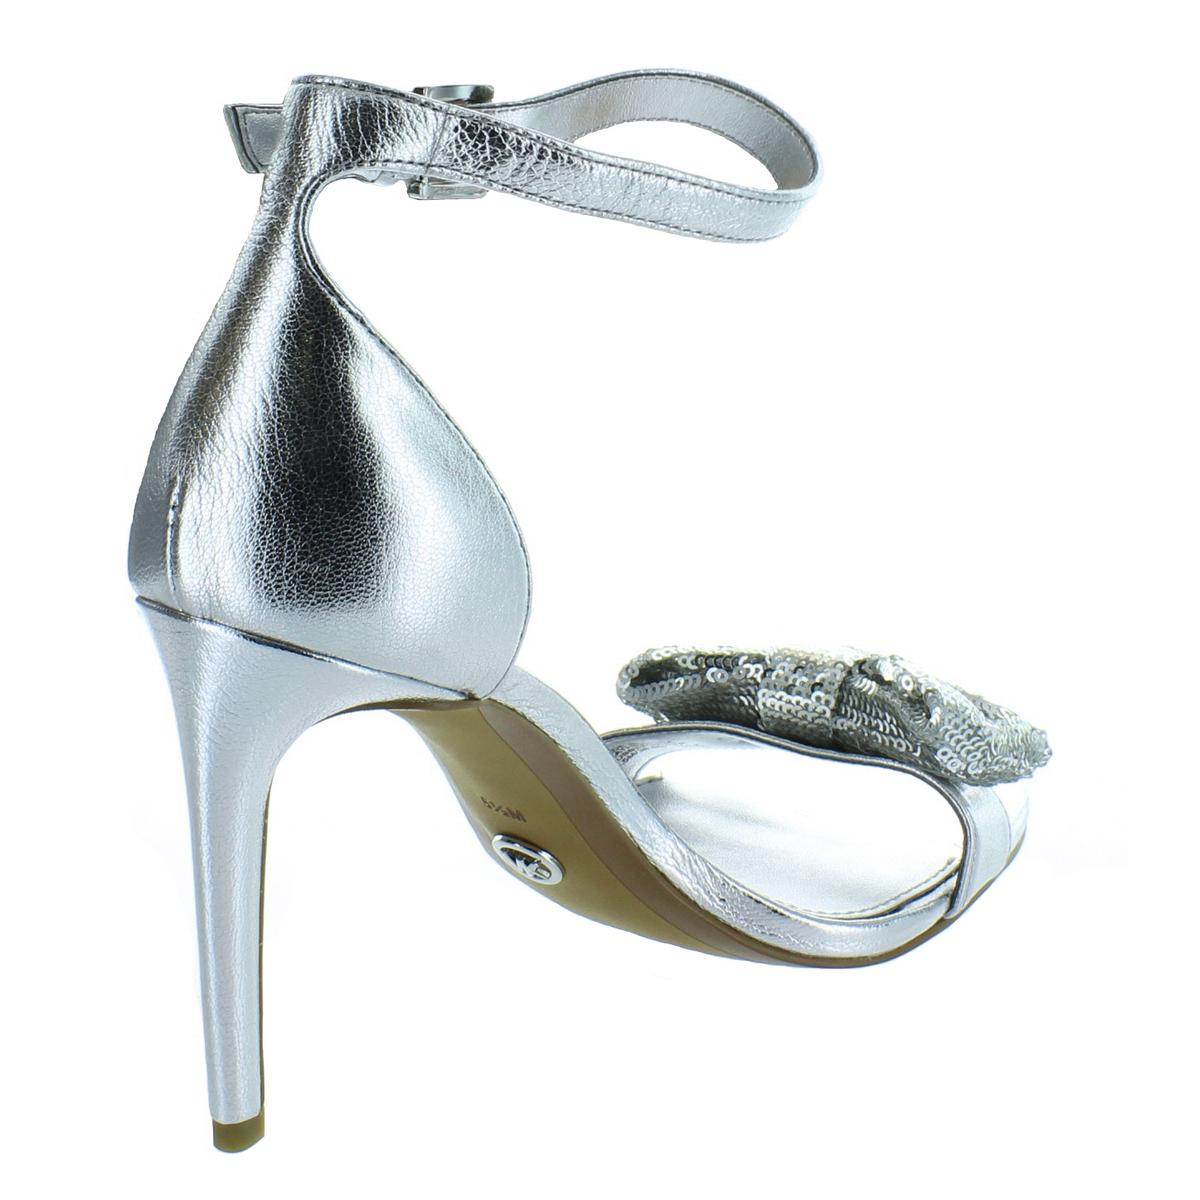 83c7f23193 Michael Kors Shoes Size 7 High HEELS Silver Paris Metallic Ankle ...